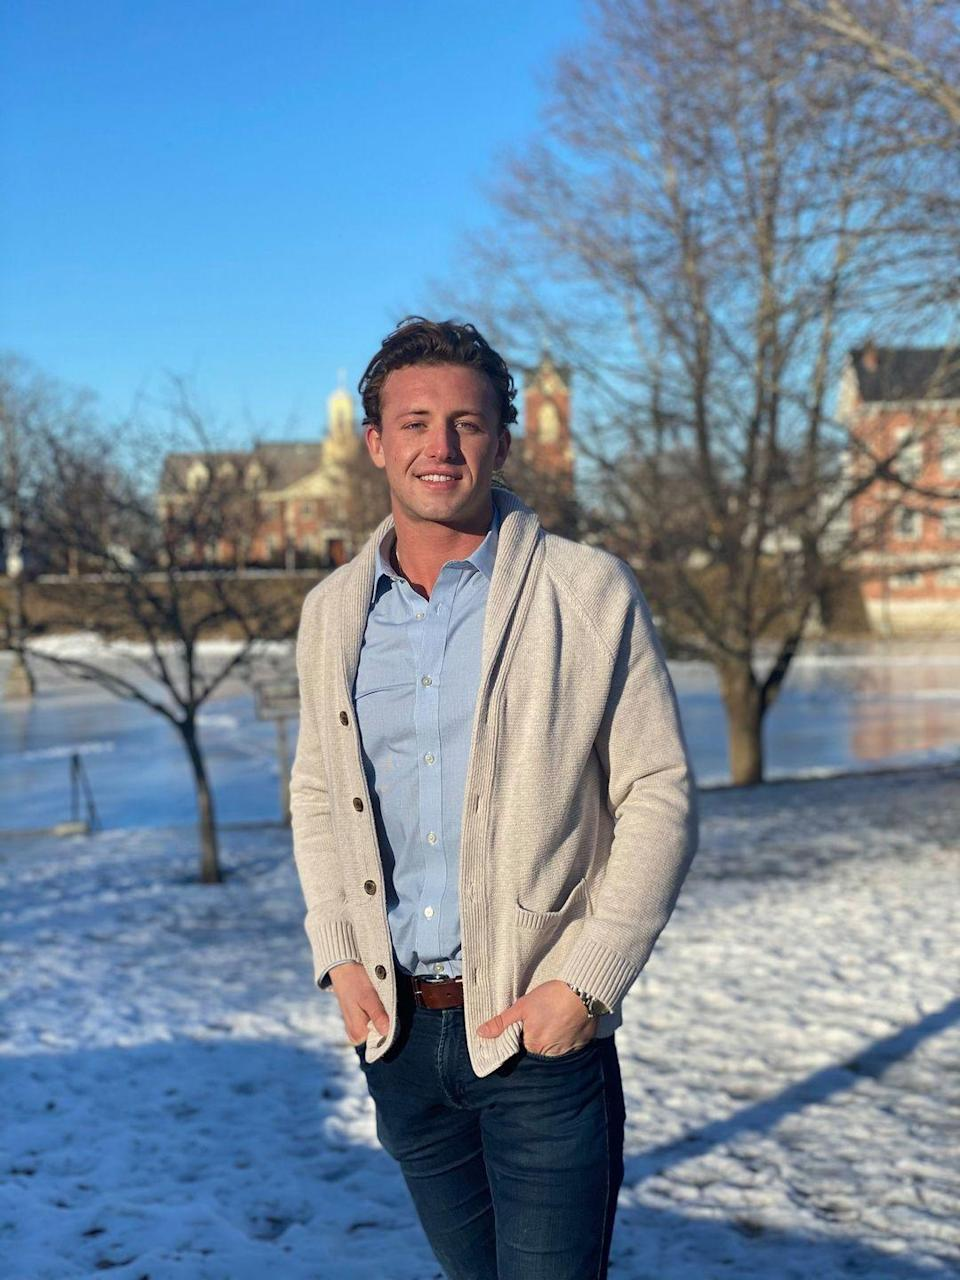 """<p>Does he look a tad like Patrick Dempsey and Tyler Cameron? Just me? Only time will tell if Katie has eyes for McDreamy. He's not in healthcare, though. Christian works as a life coach and real estate agent.</p><p><strong>Age: 26</strong></p><p><strong>Hometown: Newburyport, MA</strong></p><p><strong>Instagram: <a href=""""https://www.instagram.com/christian.smith17/"""" rel=""""nofollow noopener"""" target=""""_blank"""" data-ylk=""""slk:@christian.smith17"""" class=""""link rapid-noclick-resp"""">@christian.smith17</a></strong></p>"""